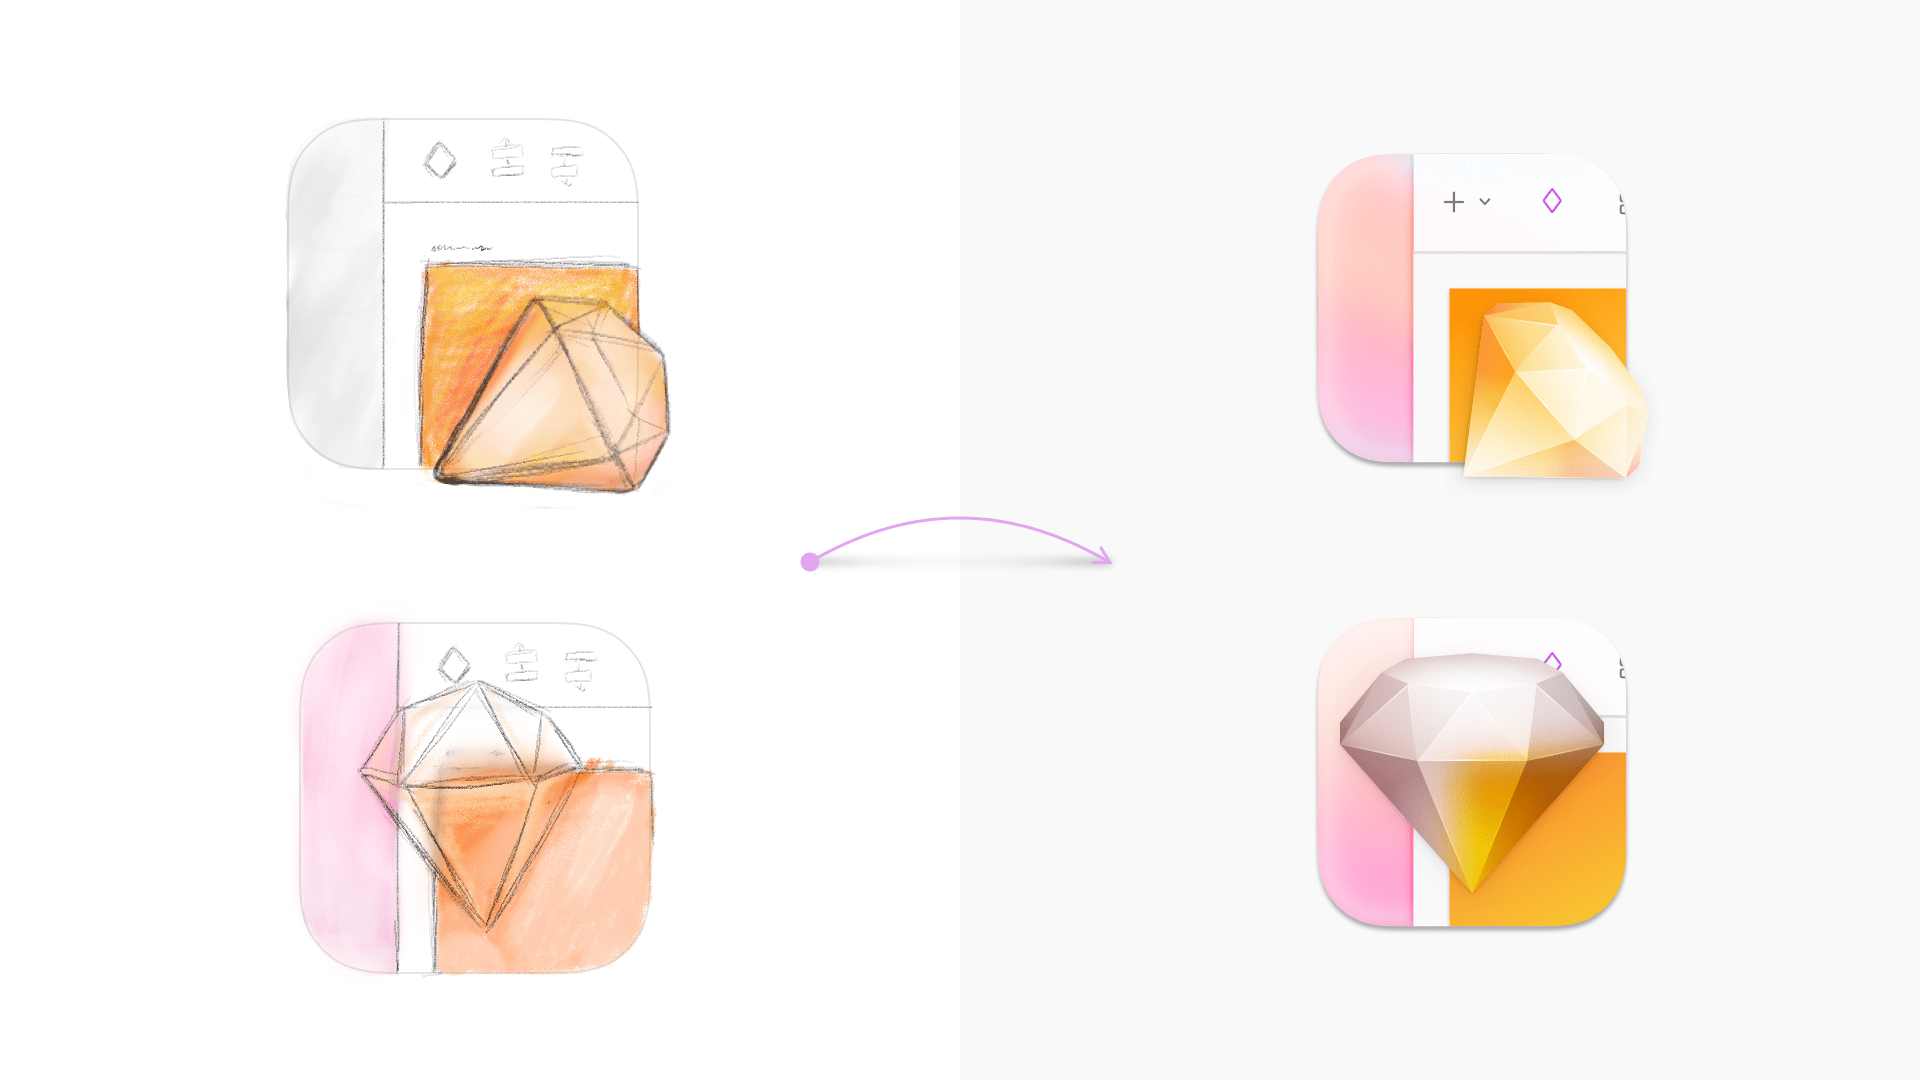 An image showing sketches and vector versions of icon ideas that used the new Sketch UI and a semi-transparent diamond.